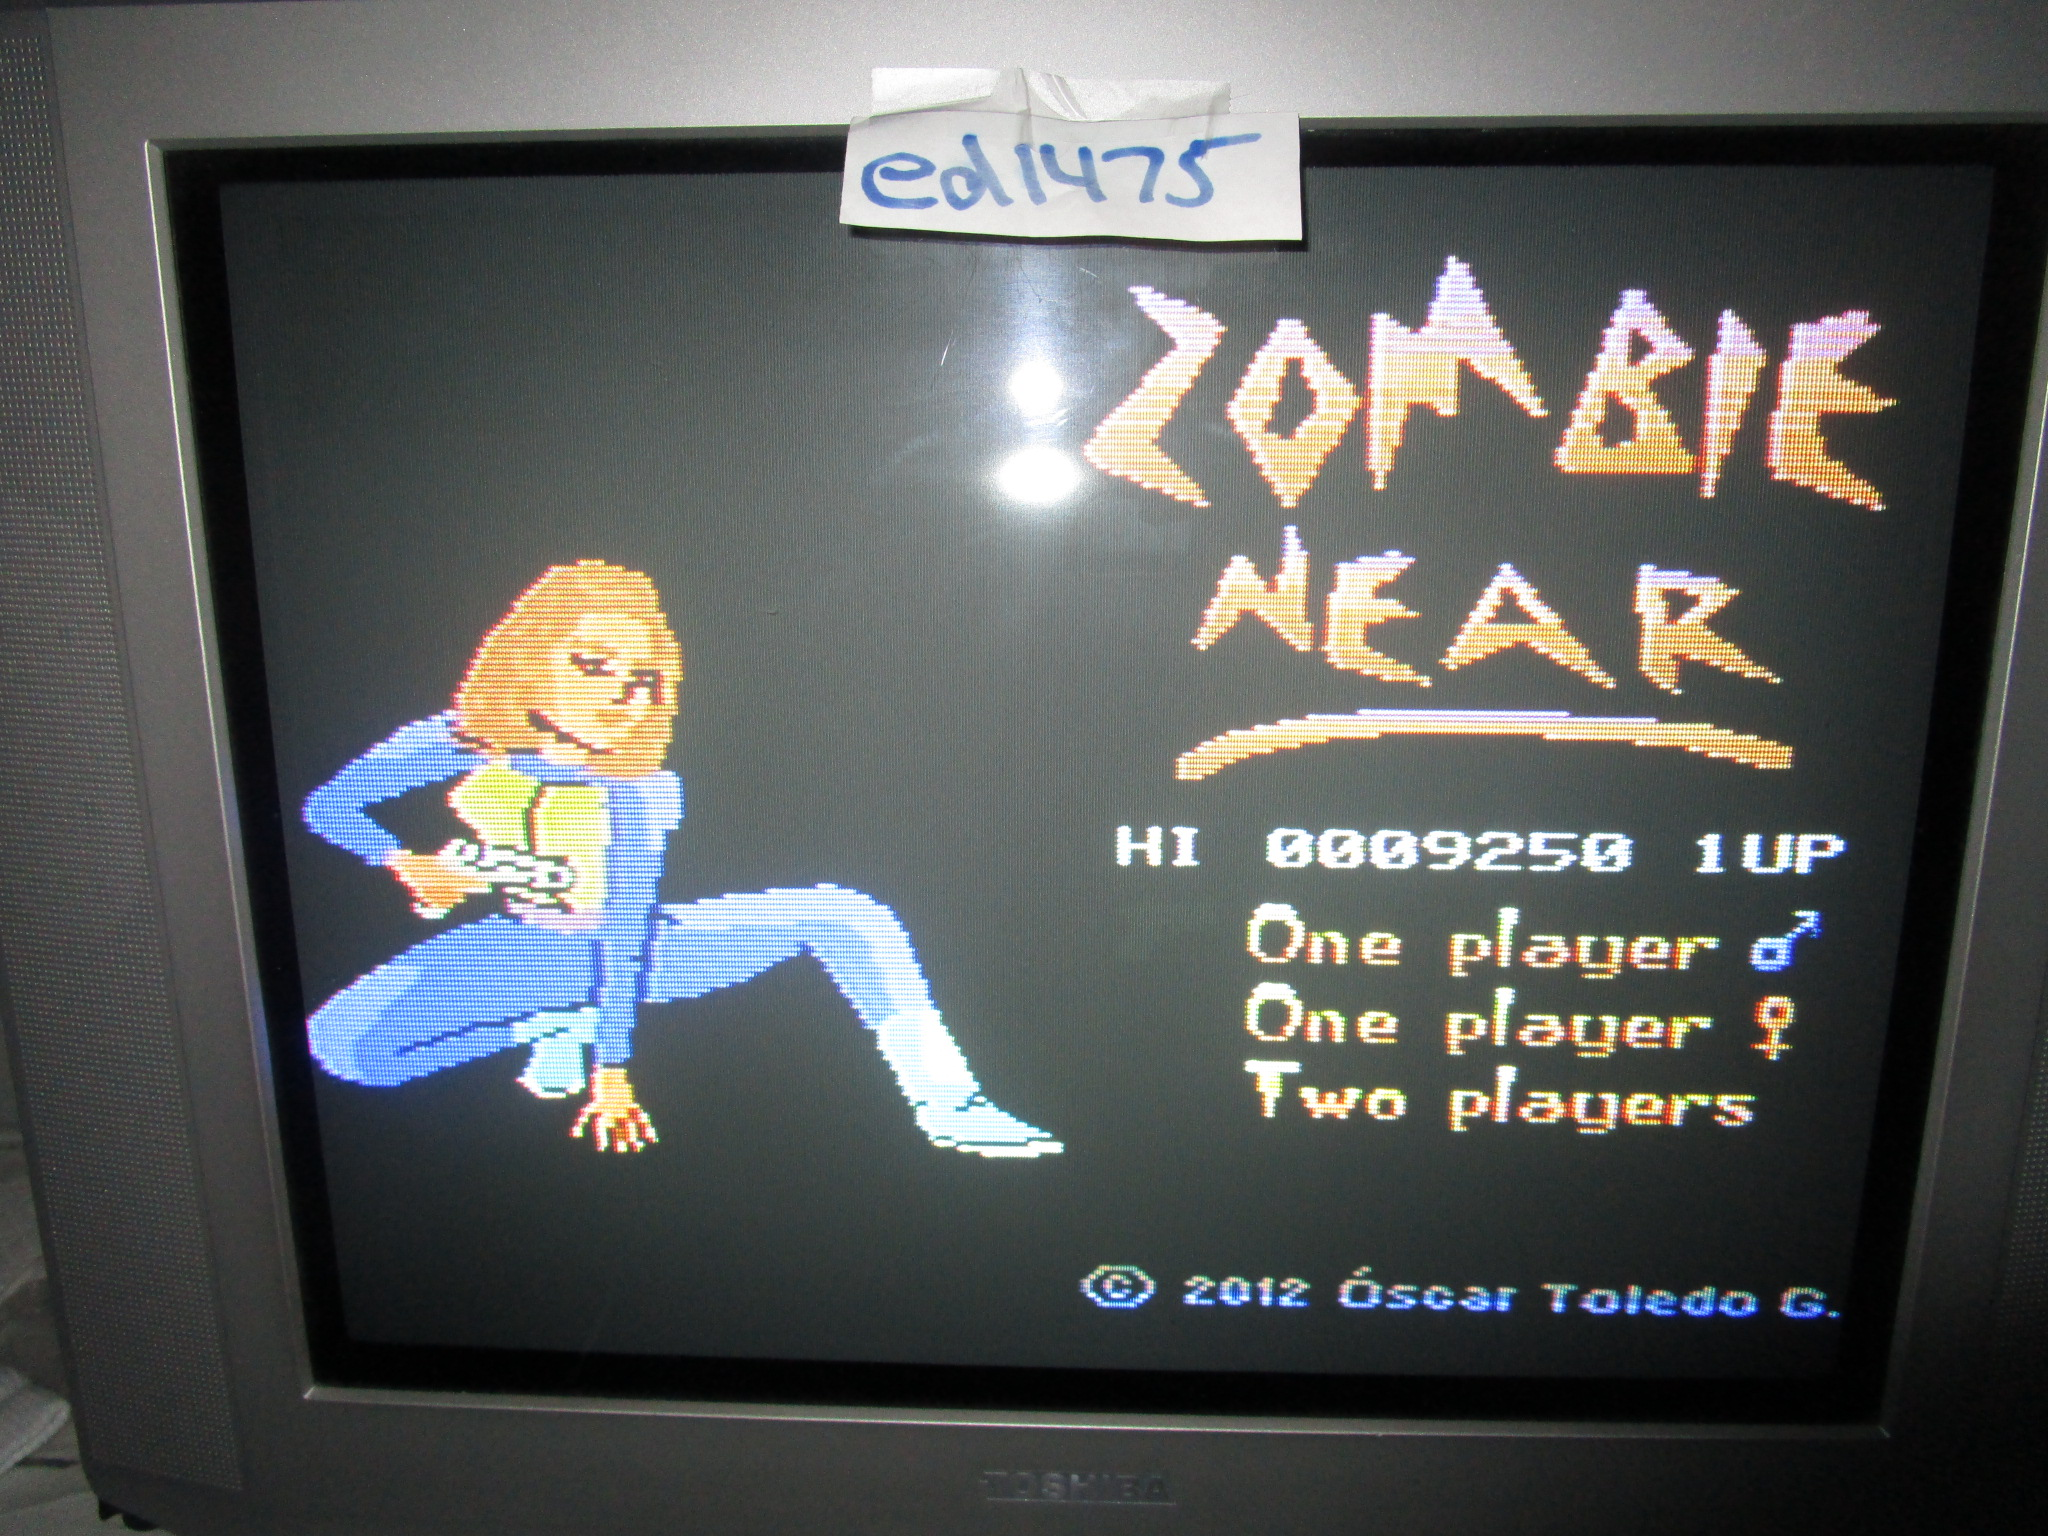 ed1475: Zombie Near (Colecovision) 9,250 points on 2015-05-25 18:58:22